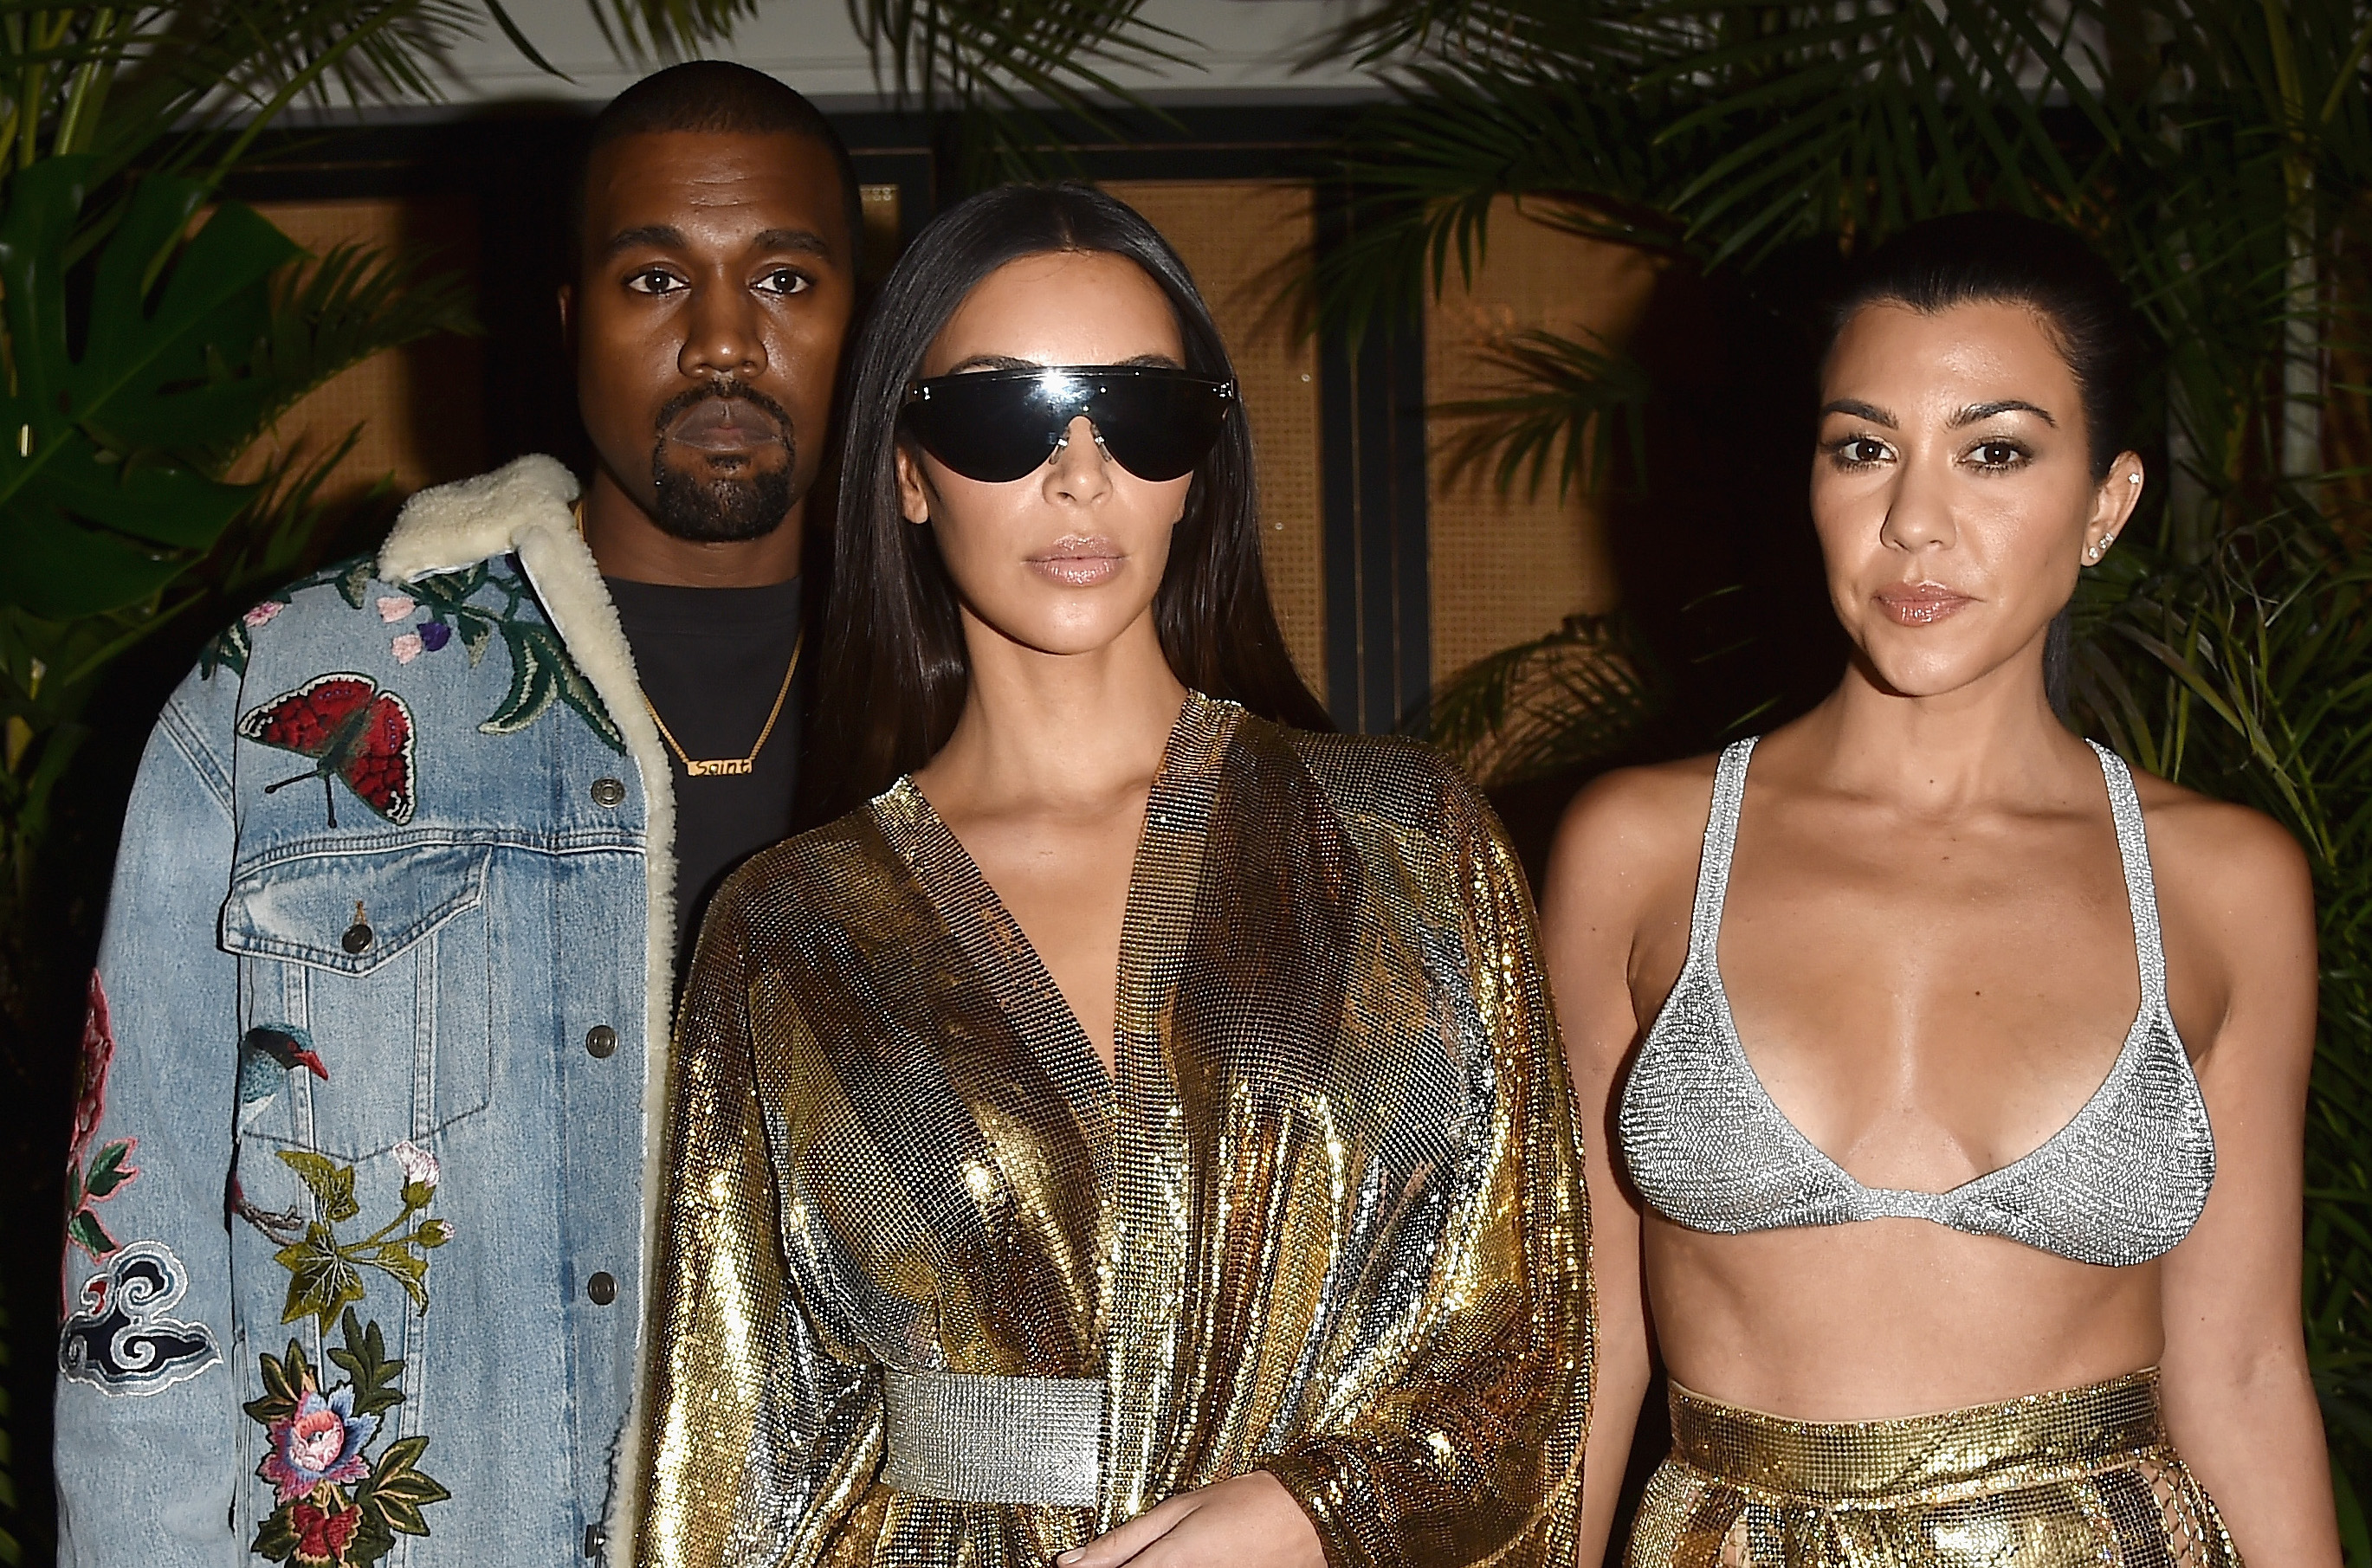 903d652b588d Kanye West Trump Comments  See Celebrity Reactions and Twitter Unfollows